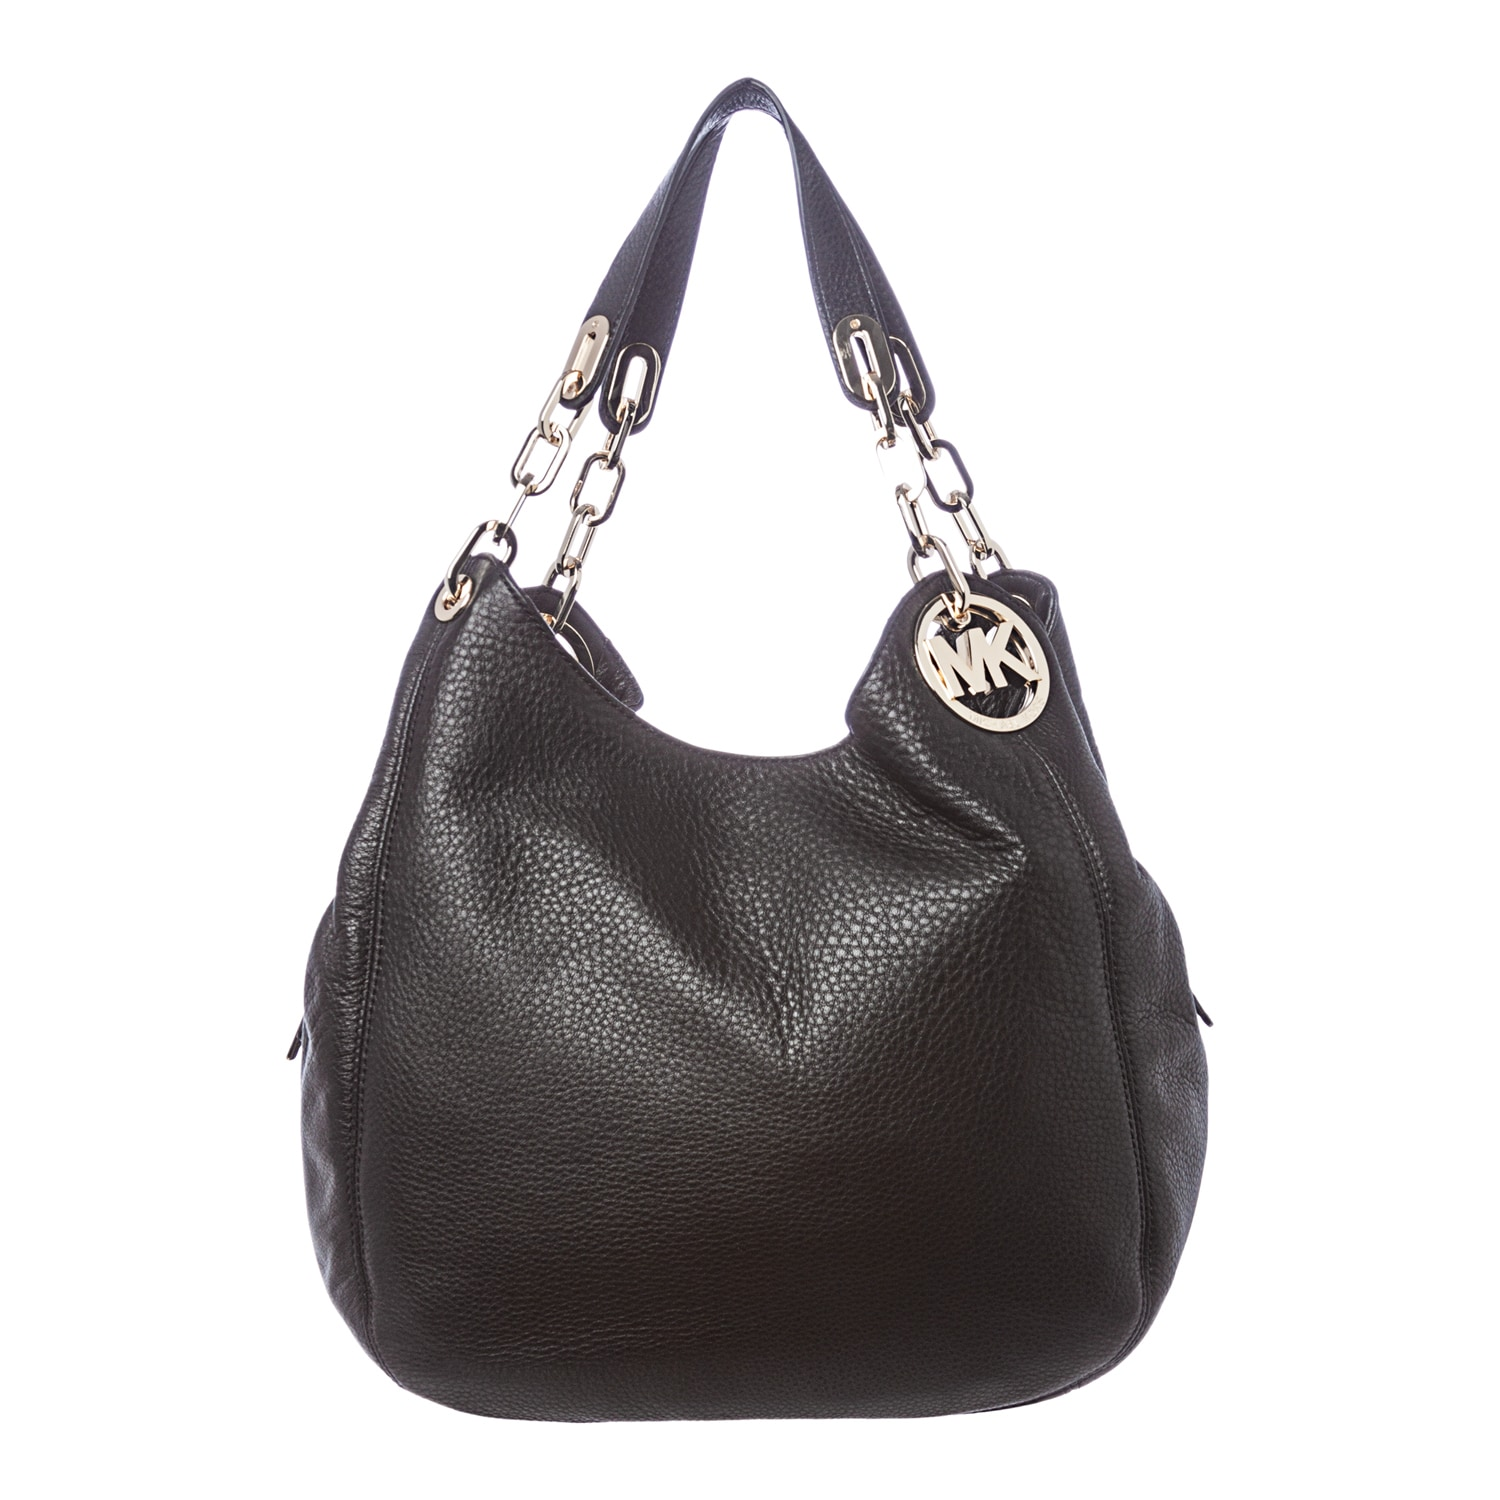 5354260a644b michael kors black fulton large shoulder bag satchel selma medium top zip  large selma bag uk